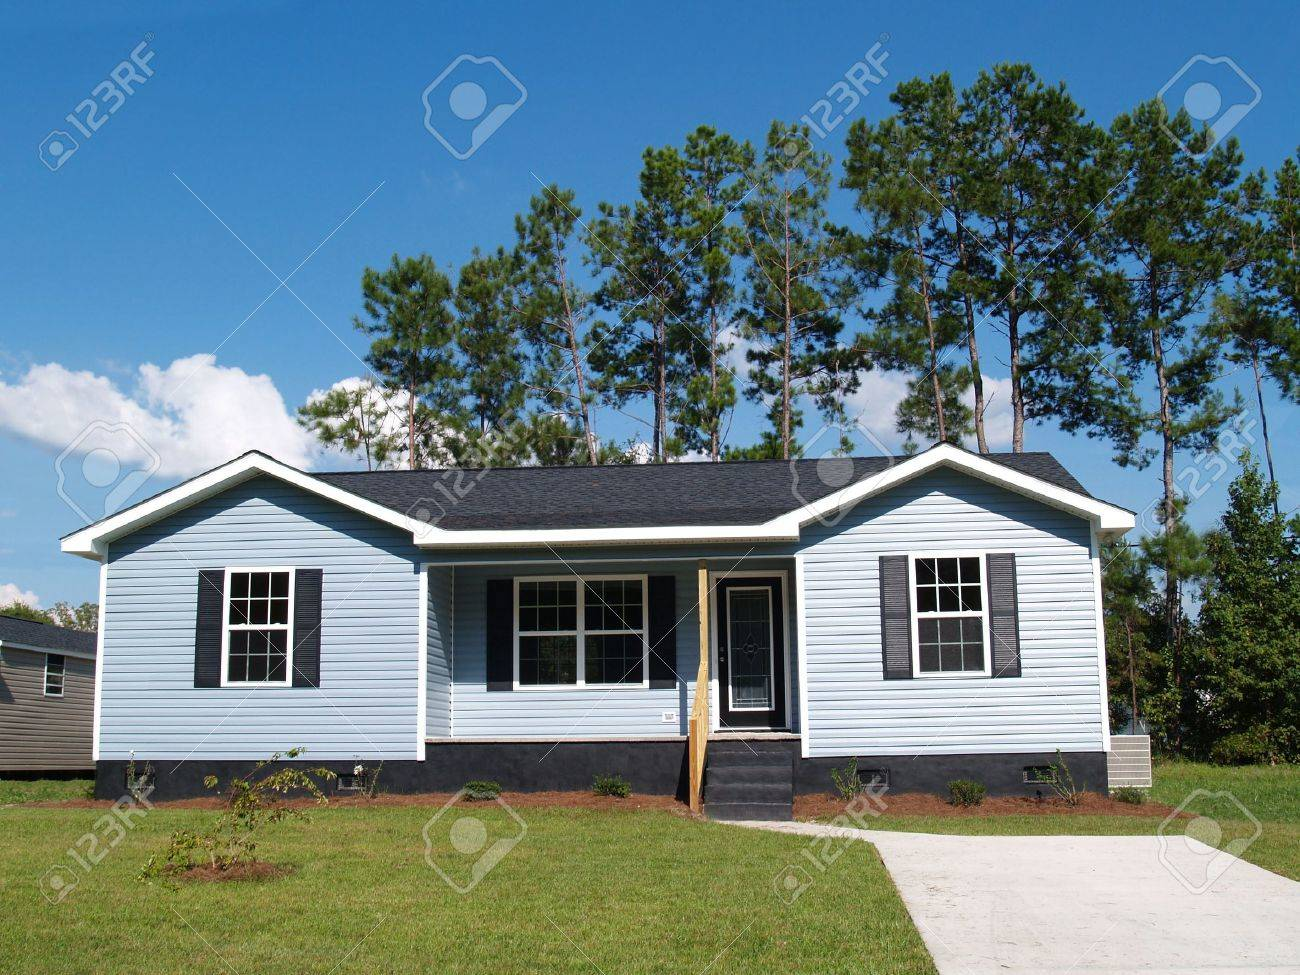 one story house stock photos pictures royalty free one story one story house powder blue low income single story home with porch